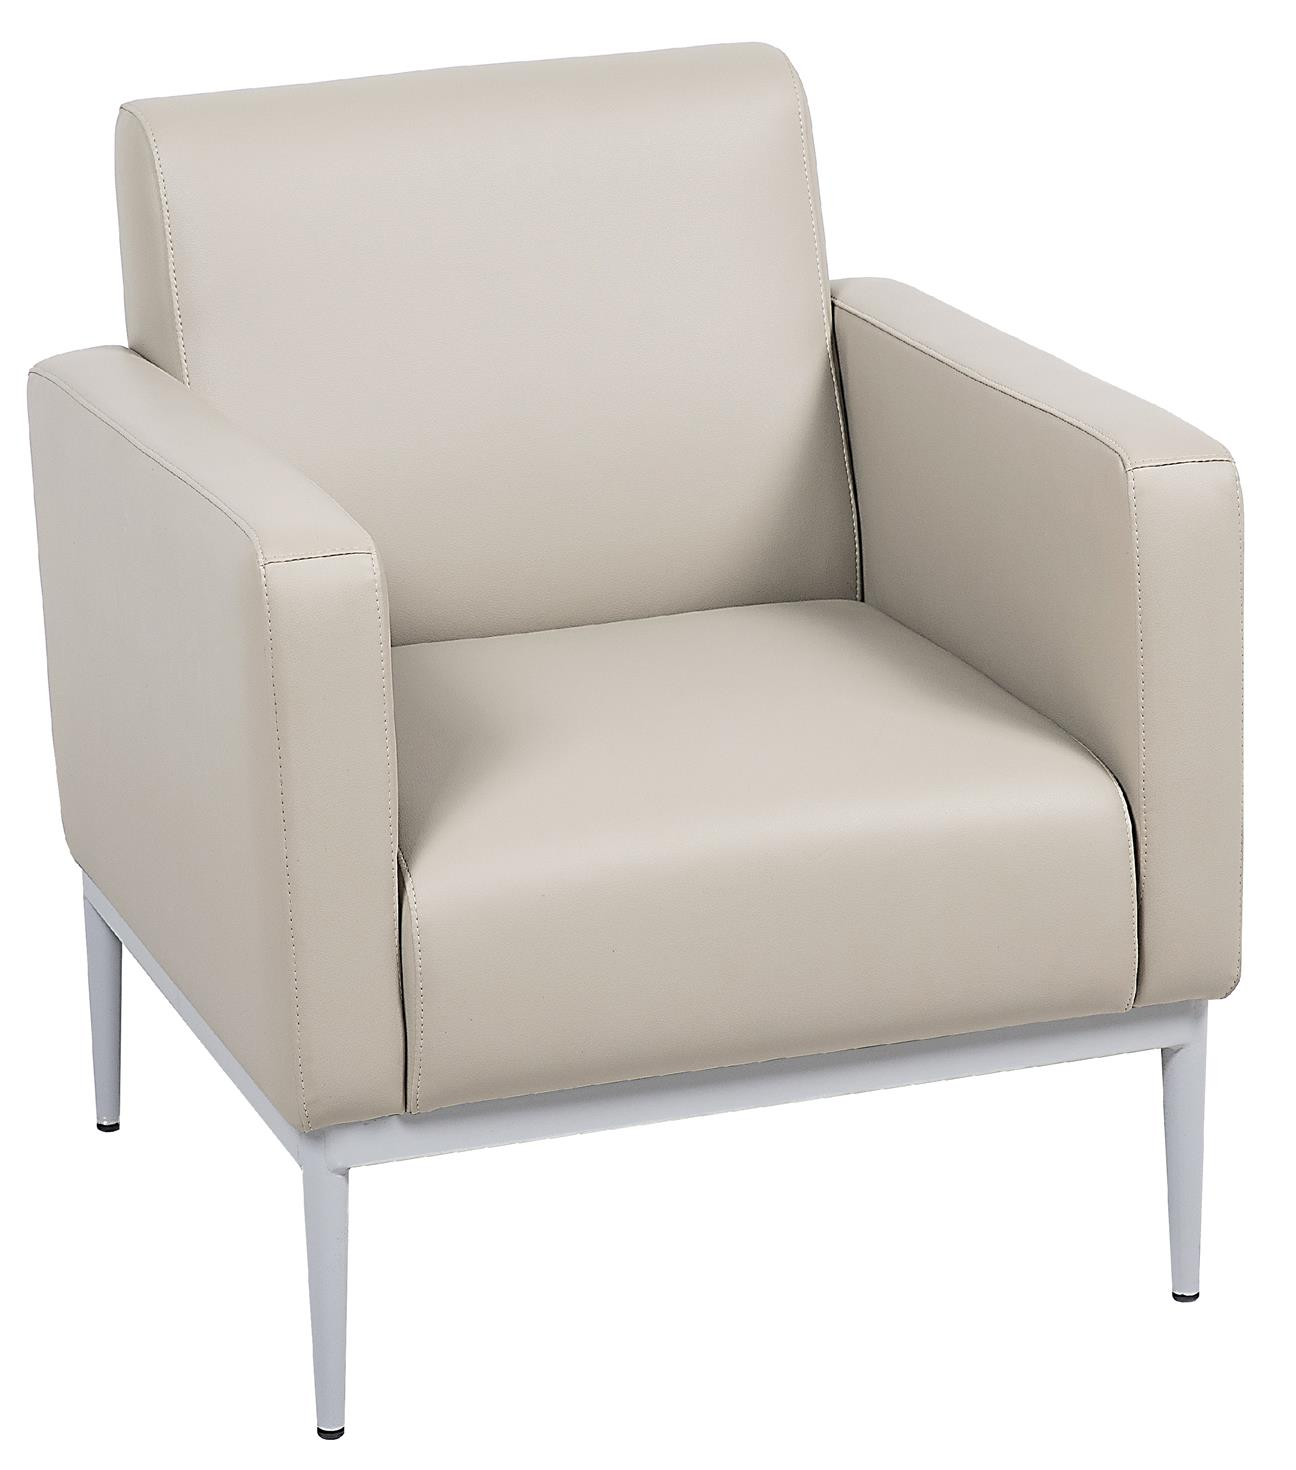 Sofa Aglio Single Seater Settee (AG-1131)-1S